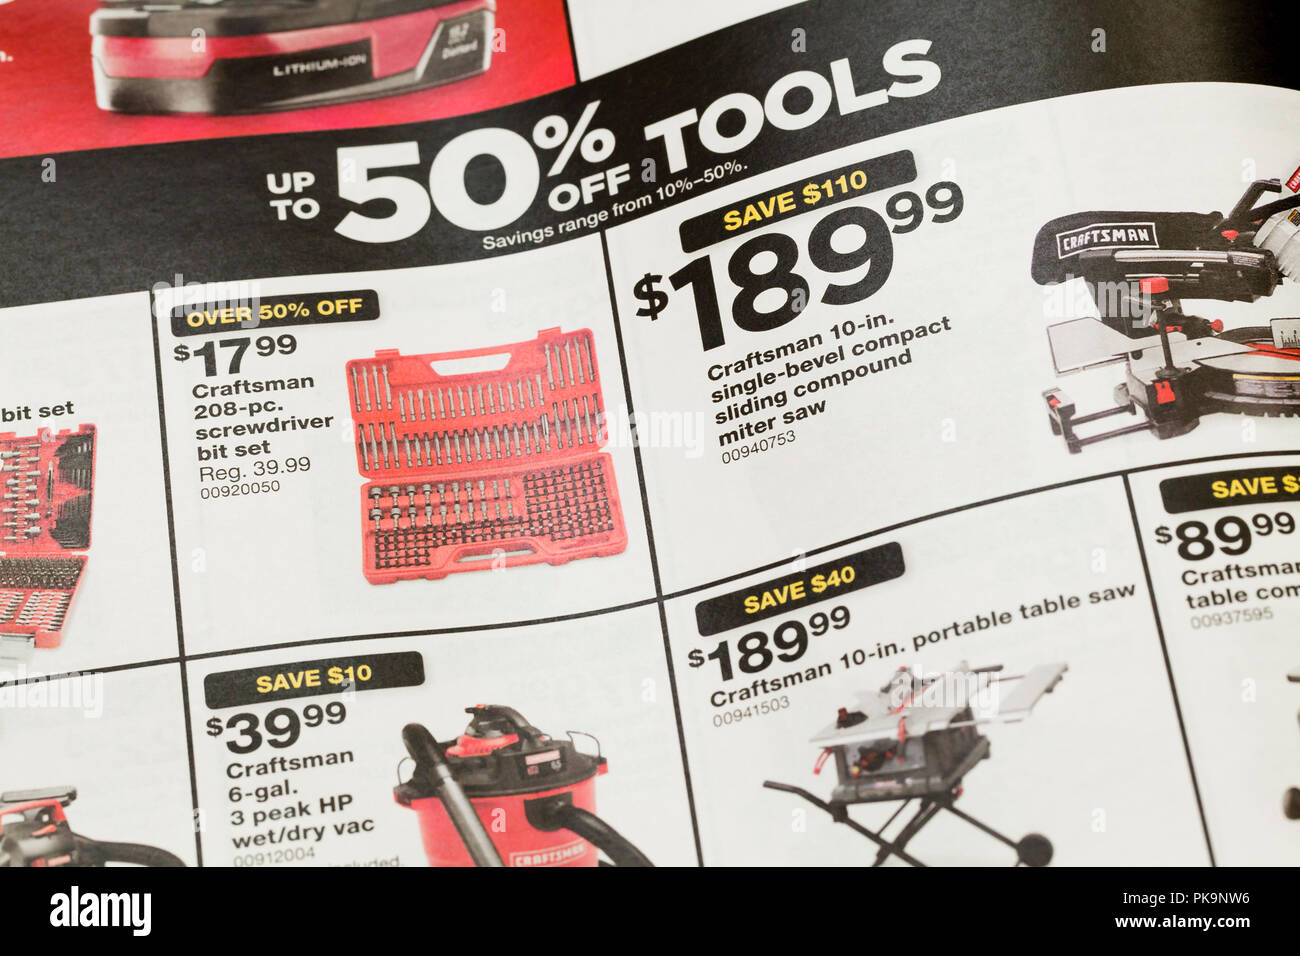 Hardware store weekly mailer ad showing sale on tools - USA - Stock Image